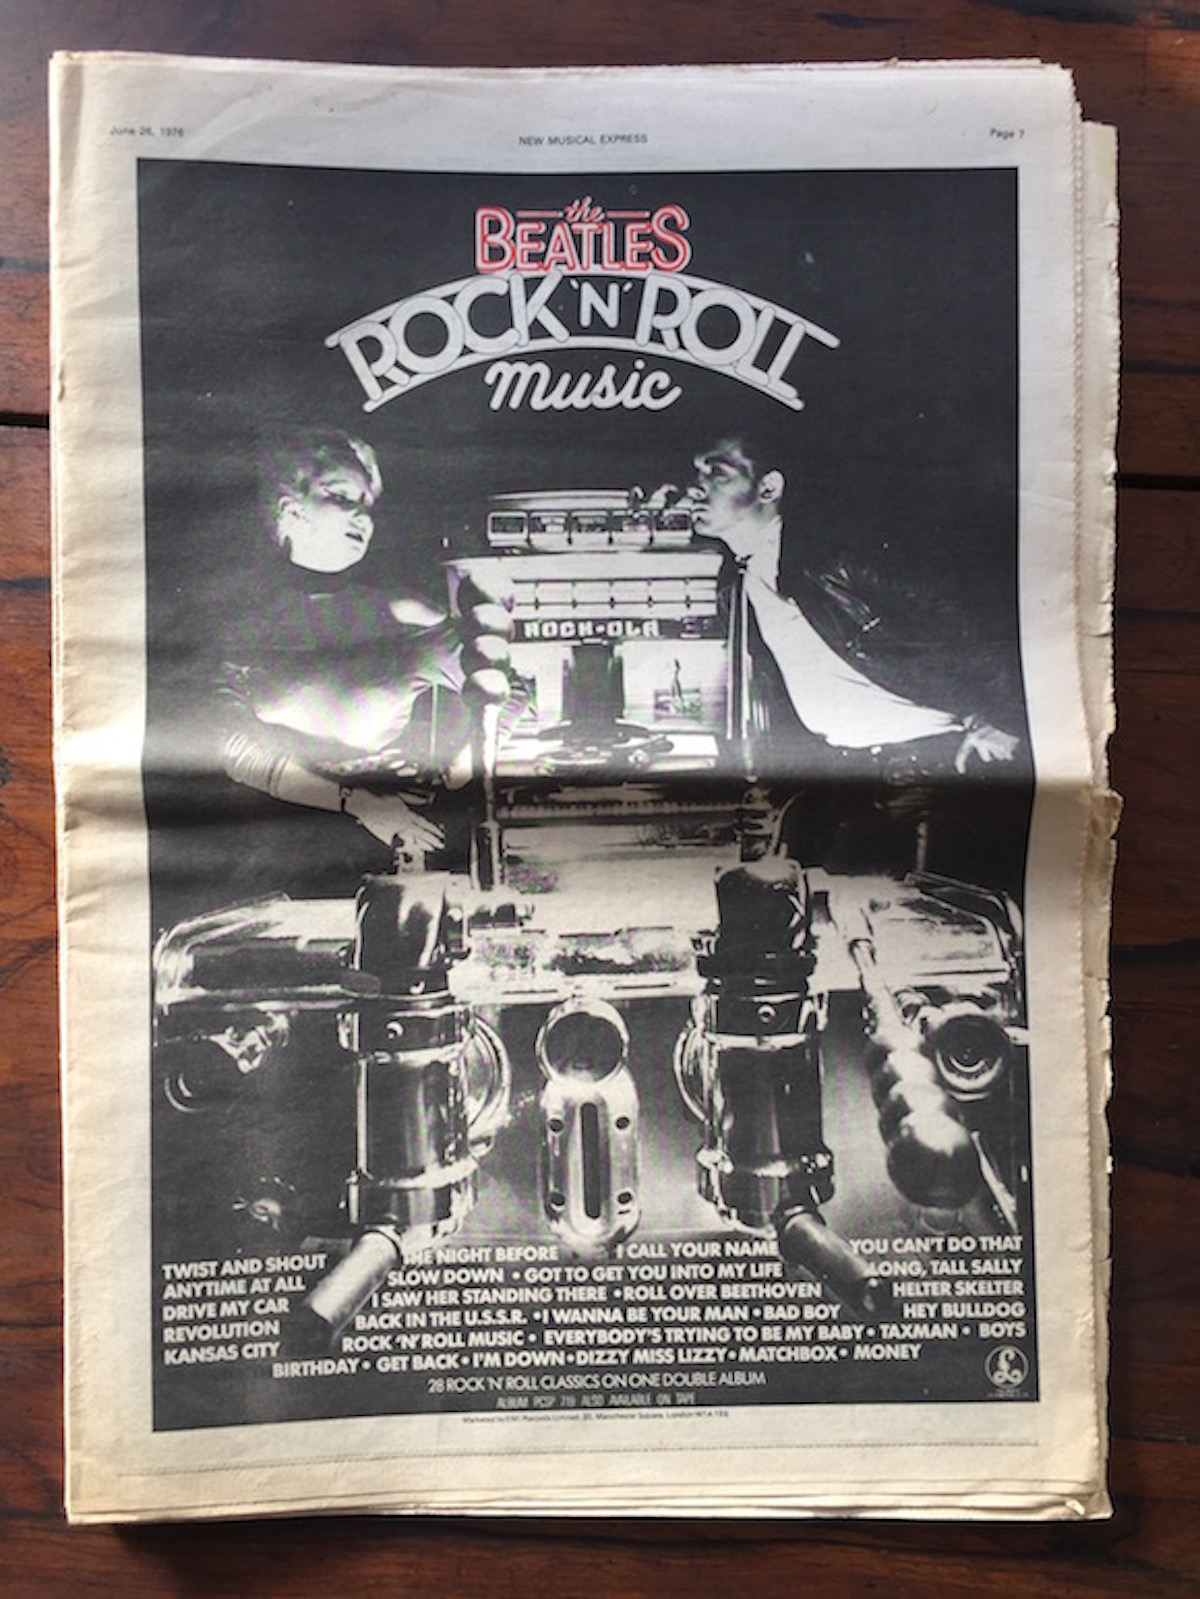 "As they appeared in the Parlophone full-page advert for The Beatles compilation Rock ""n""Roll Muisc, New Musical Express, June 26, 1976"